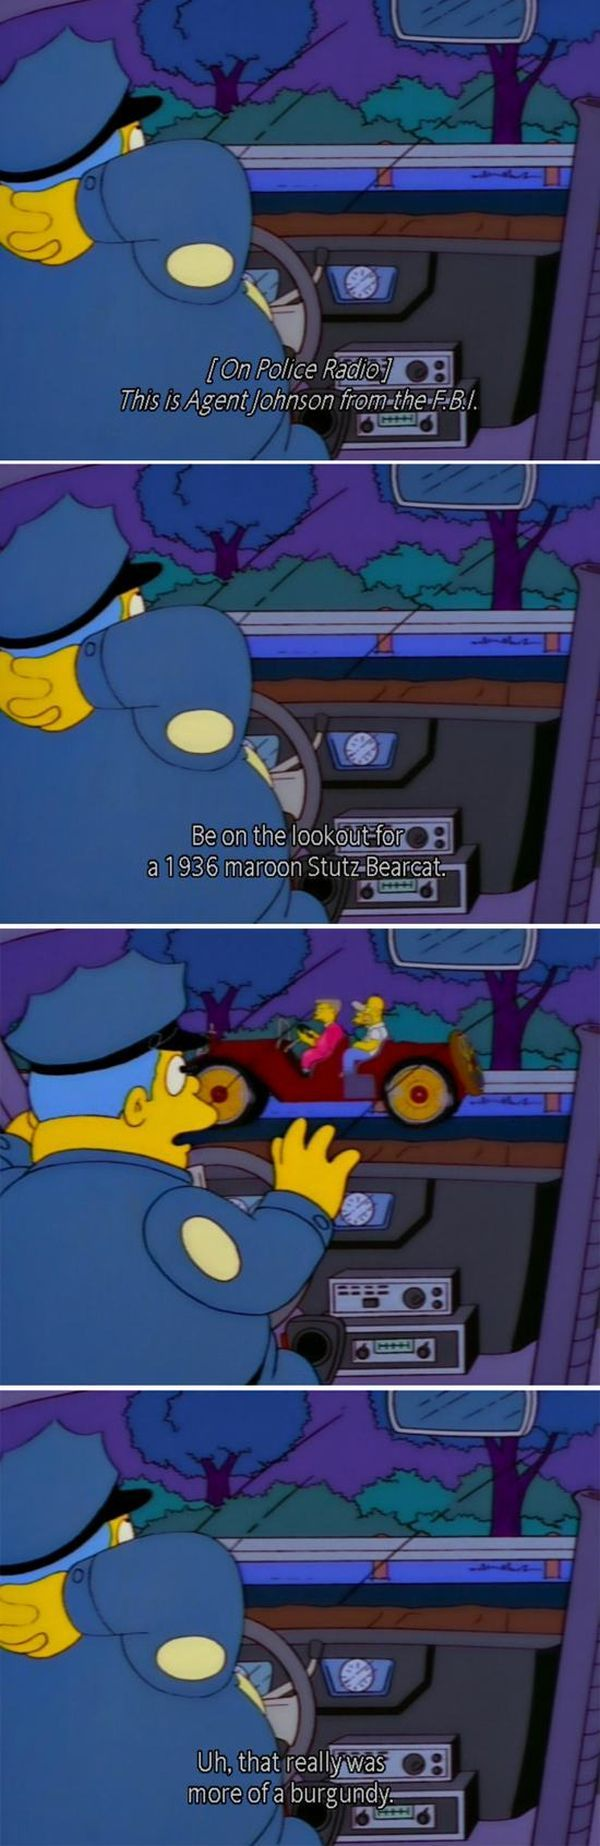 3081 best the simpsons images on pinterest homer simpson the simpsons and pin up cartoons - Police simpsons ...